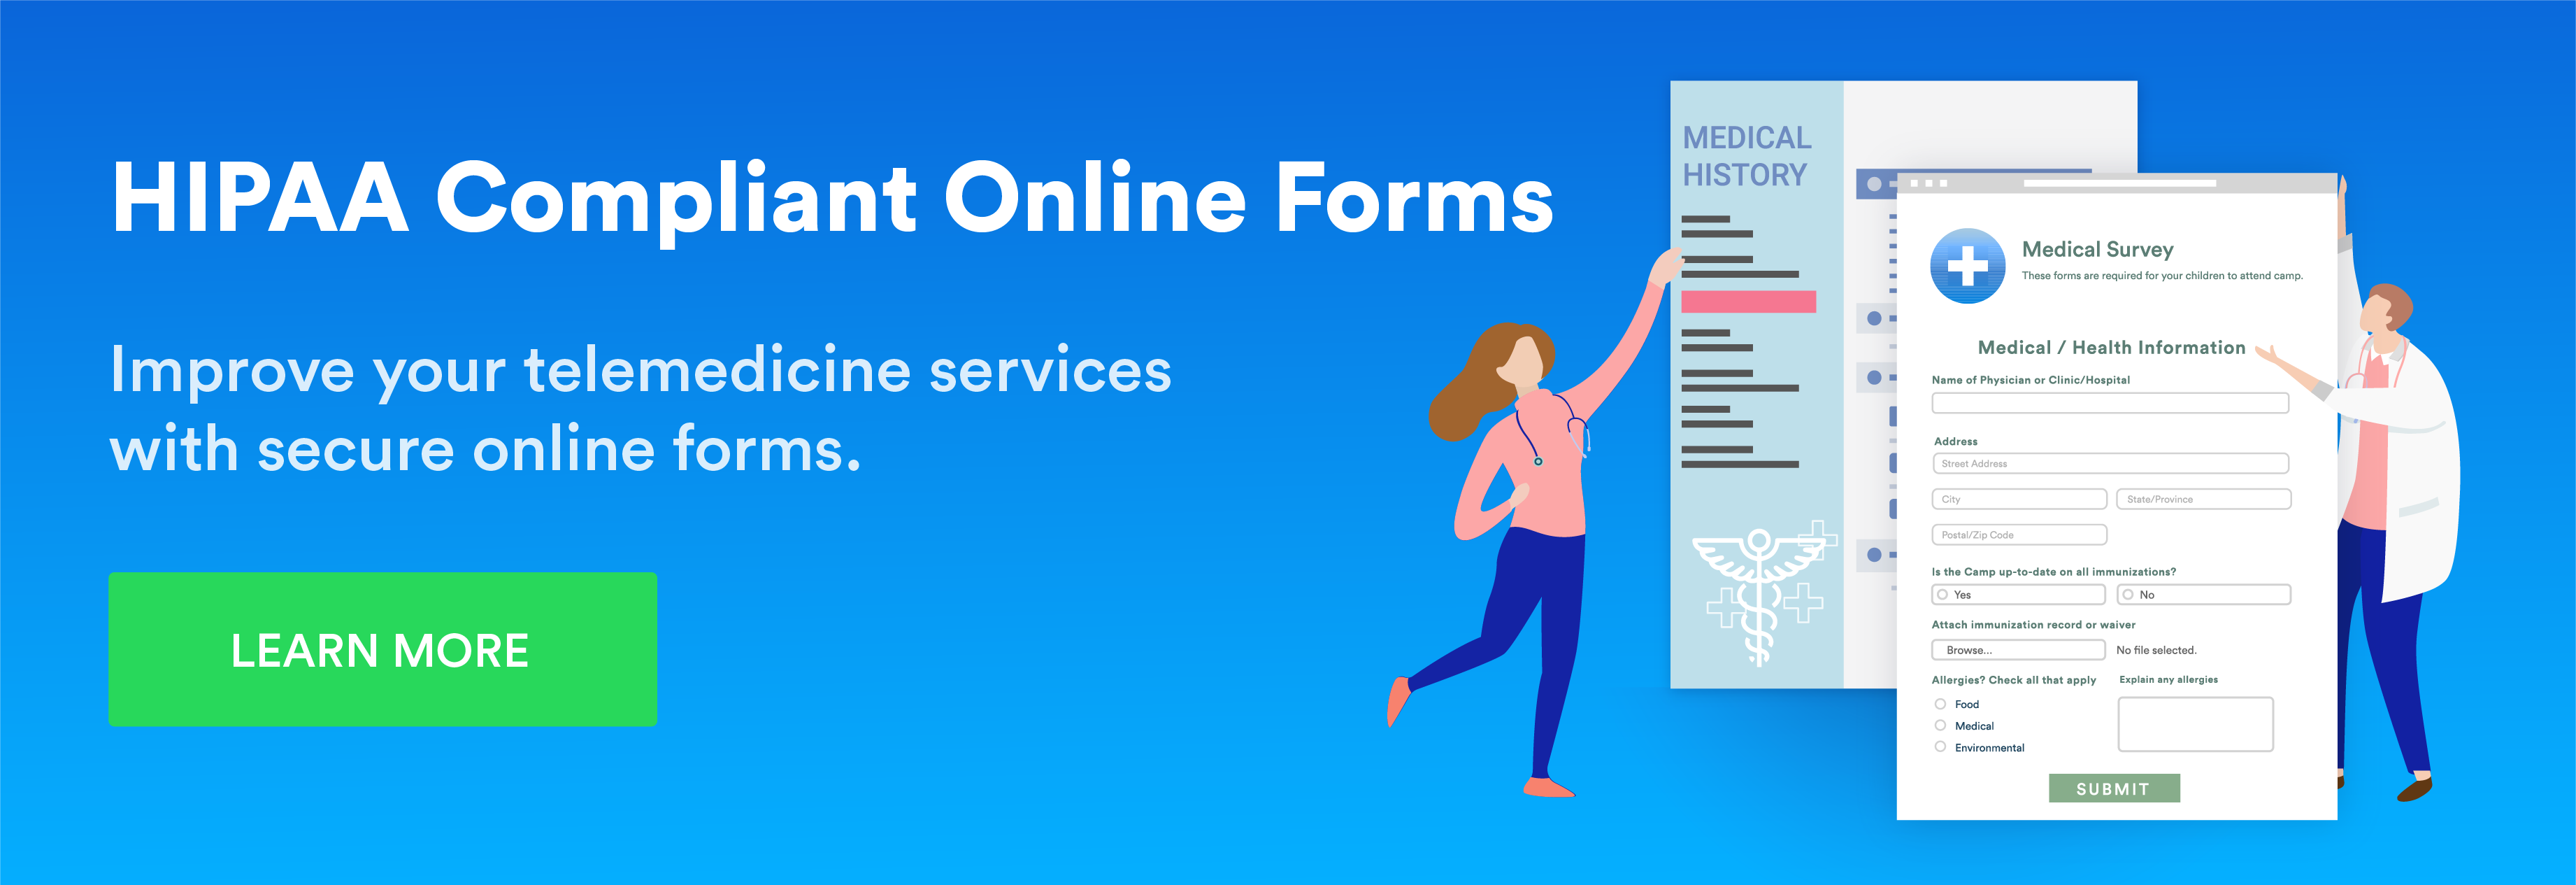 Improve your telemedicine services with secure online forms.